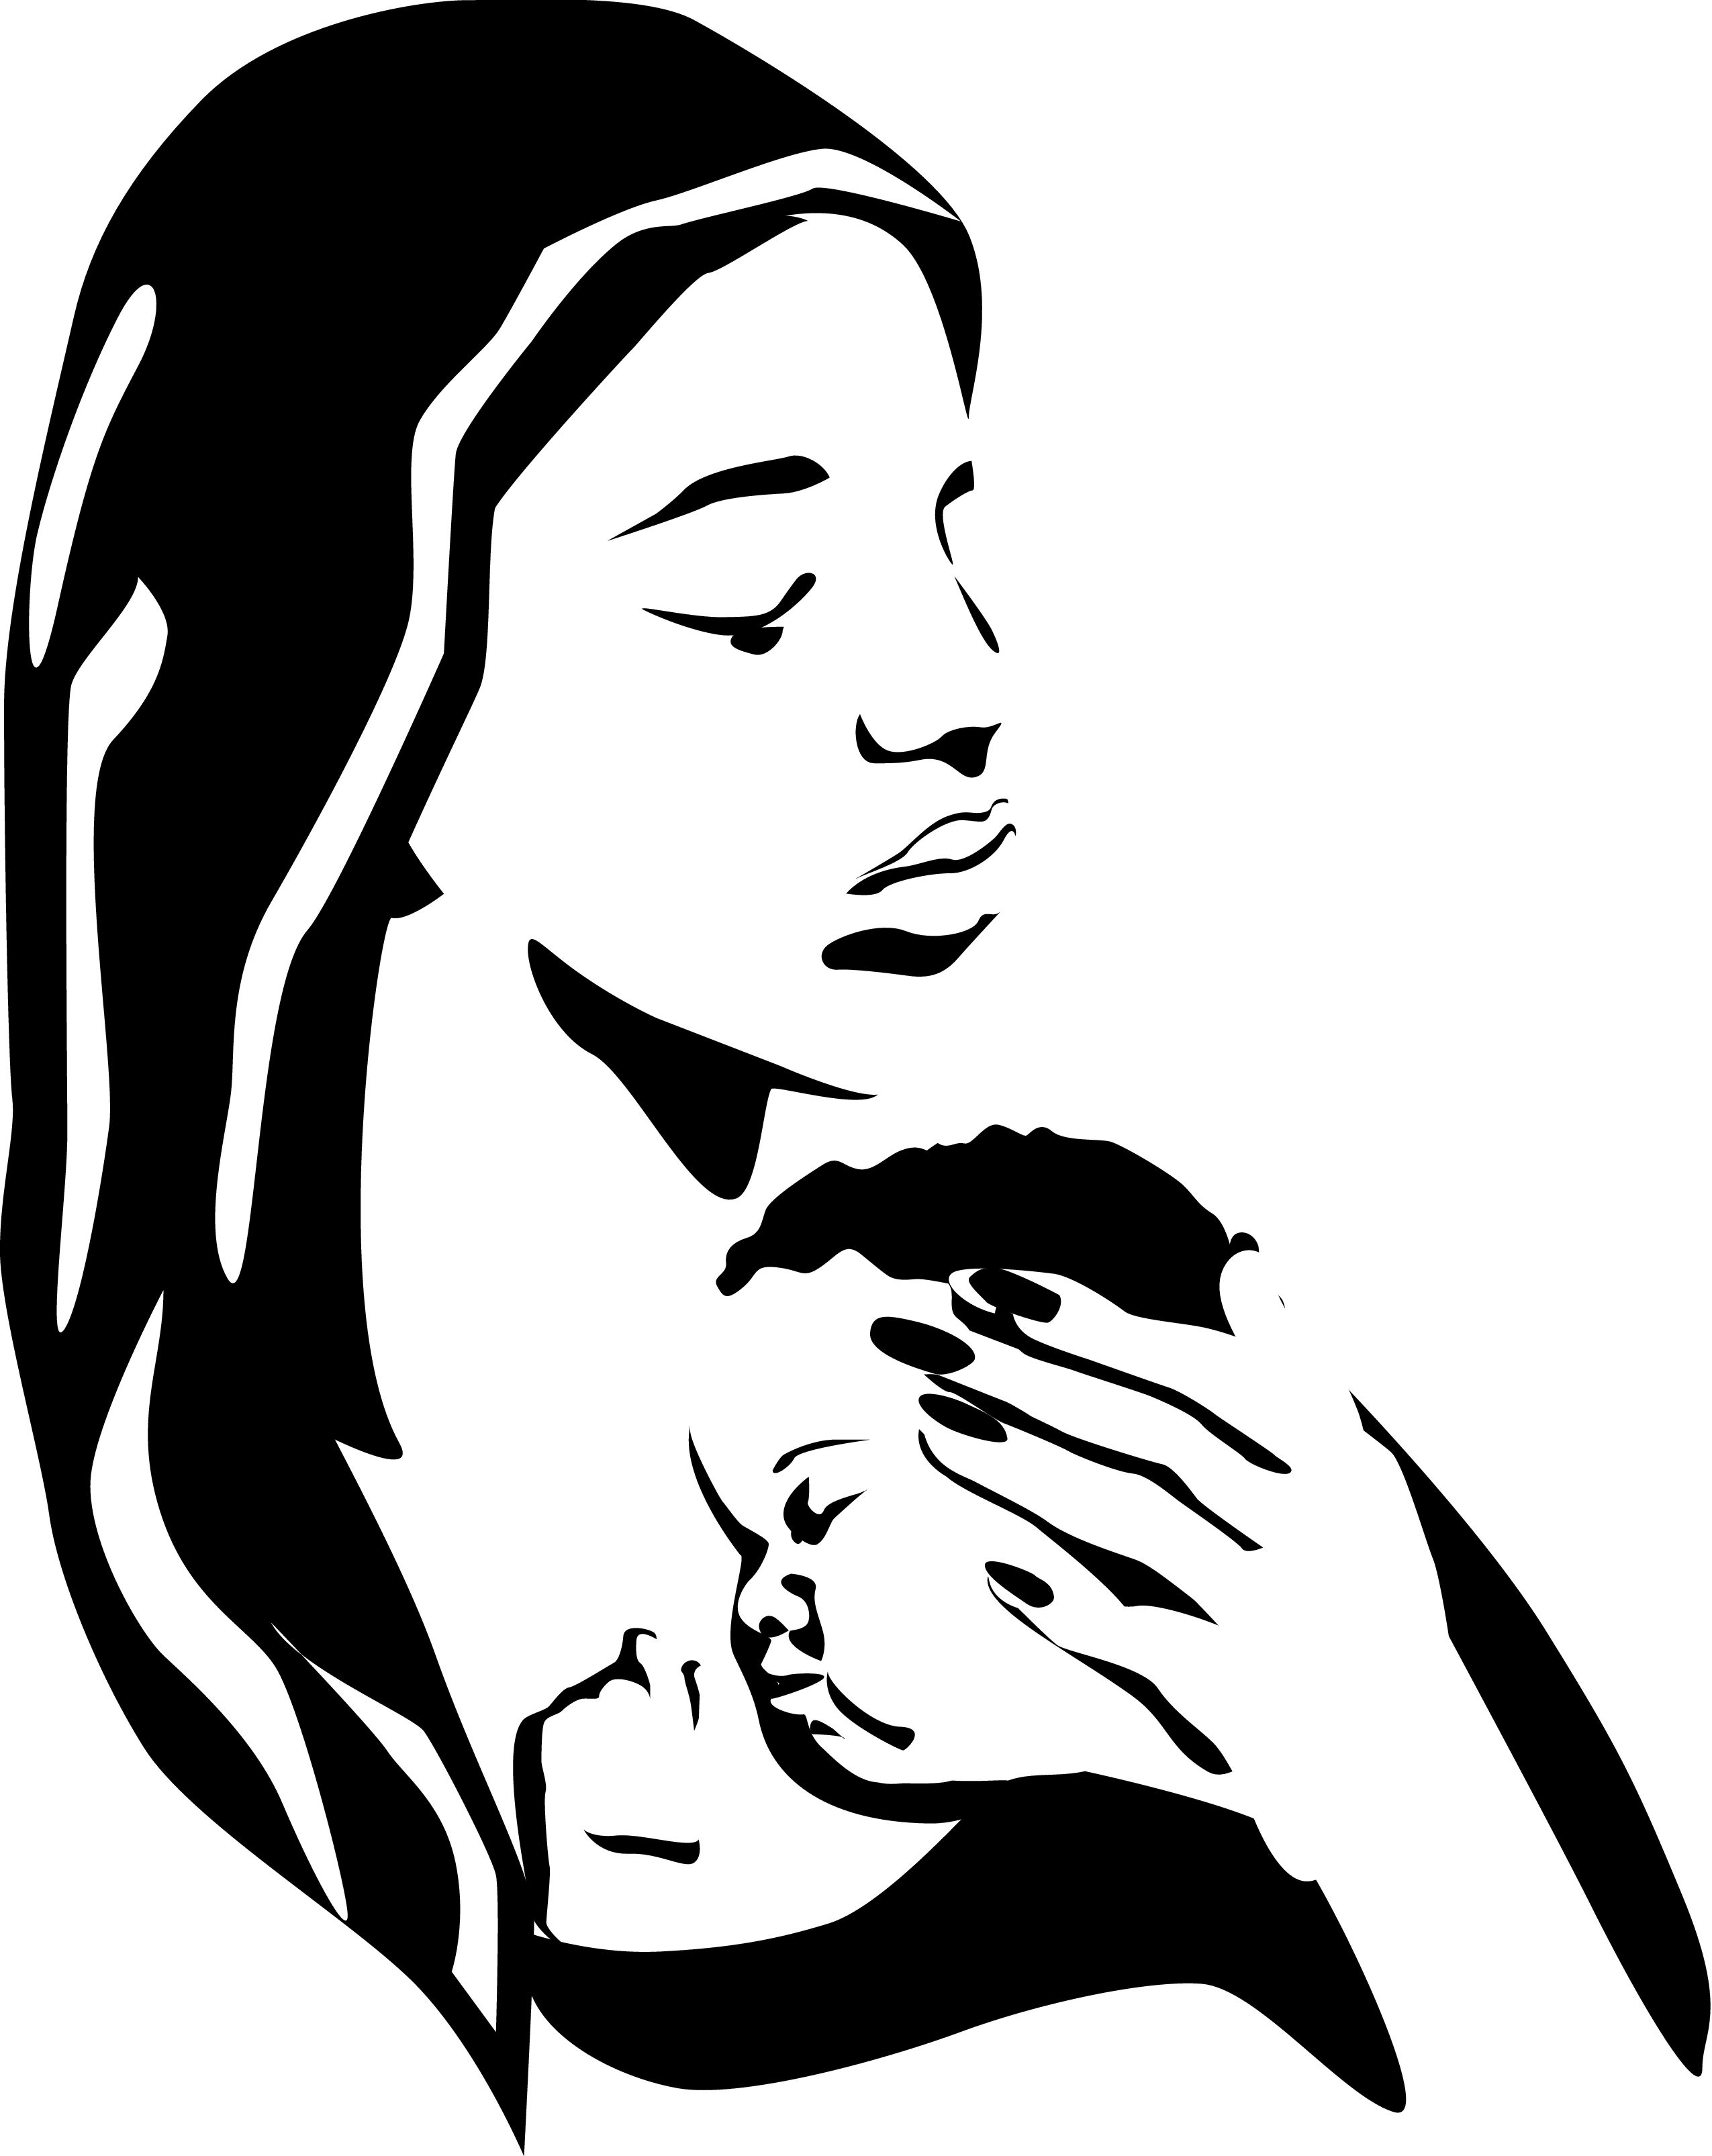 Mother Holding Baby Silhouette Tattoo Mother holding baby.